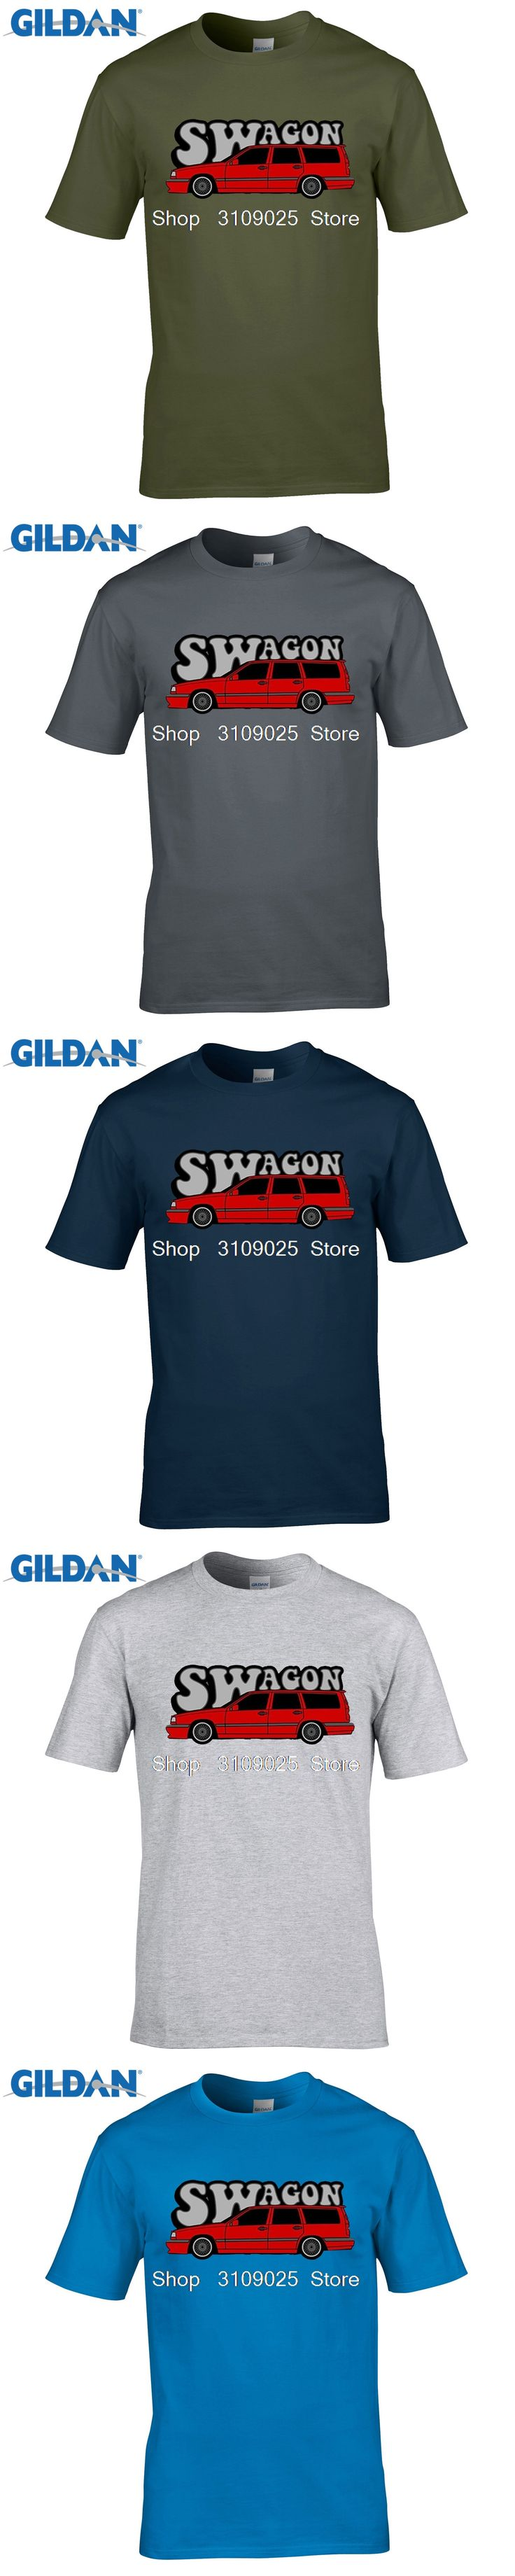 GILDAN customised t-shirts Swag On Volvo 850R Wagon Male T Shirt 100% Cotton Short Sleeve Crew Neck Tshirt Boy Clothing